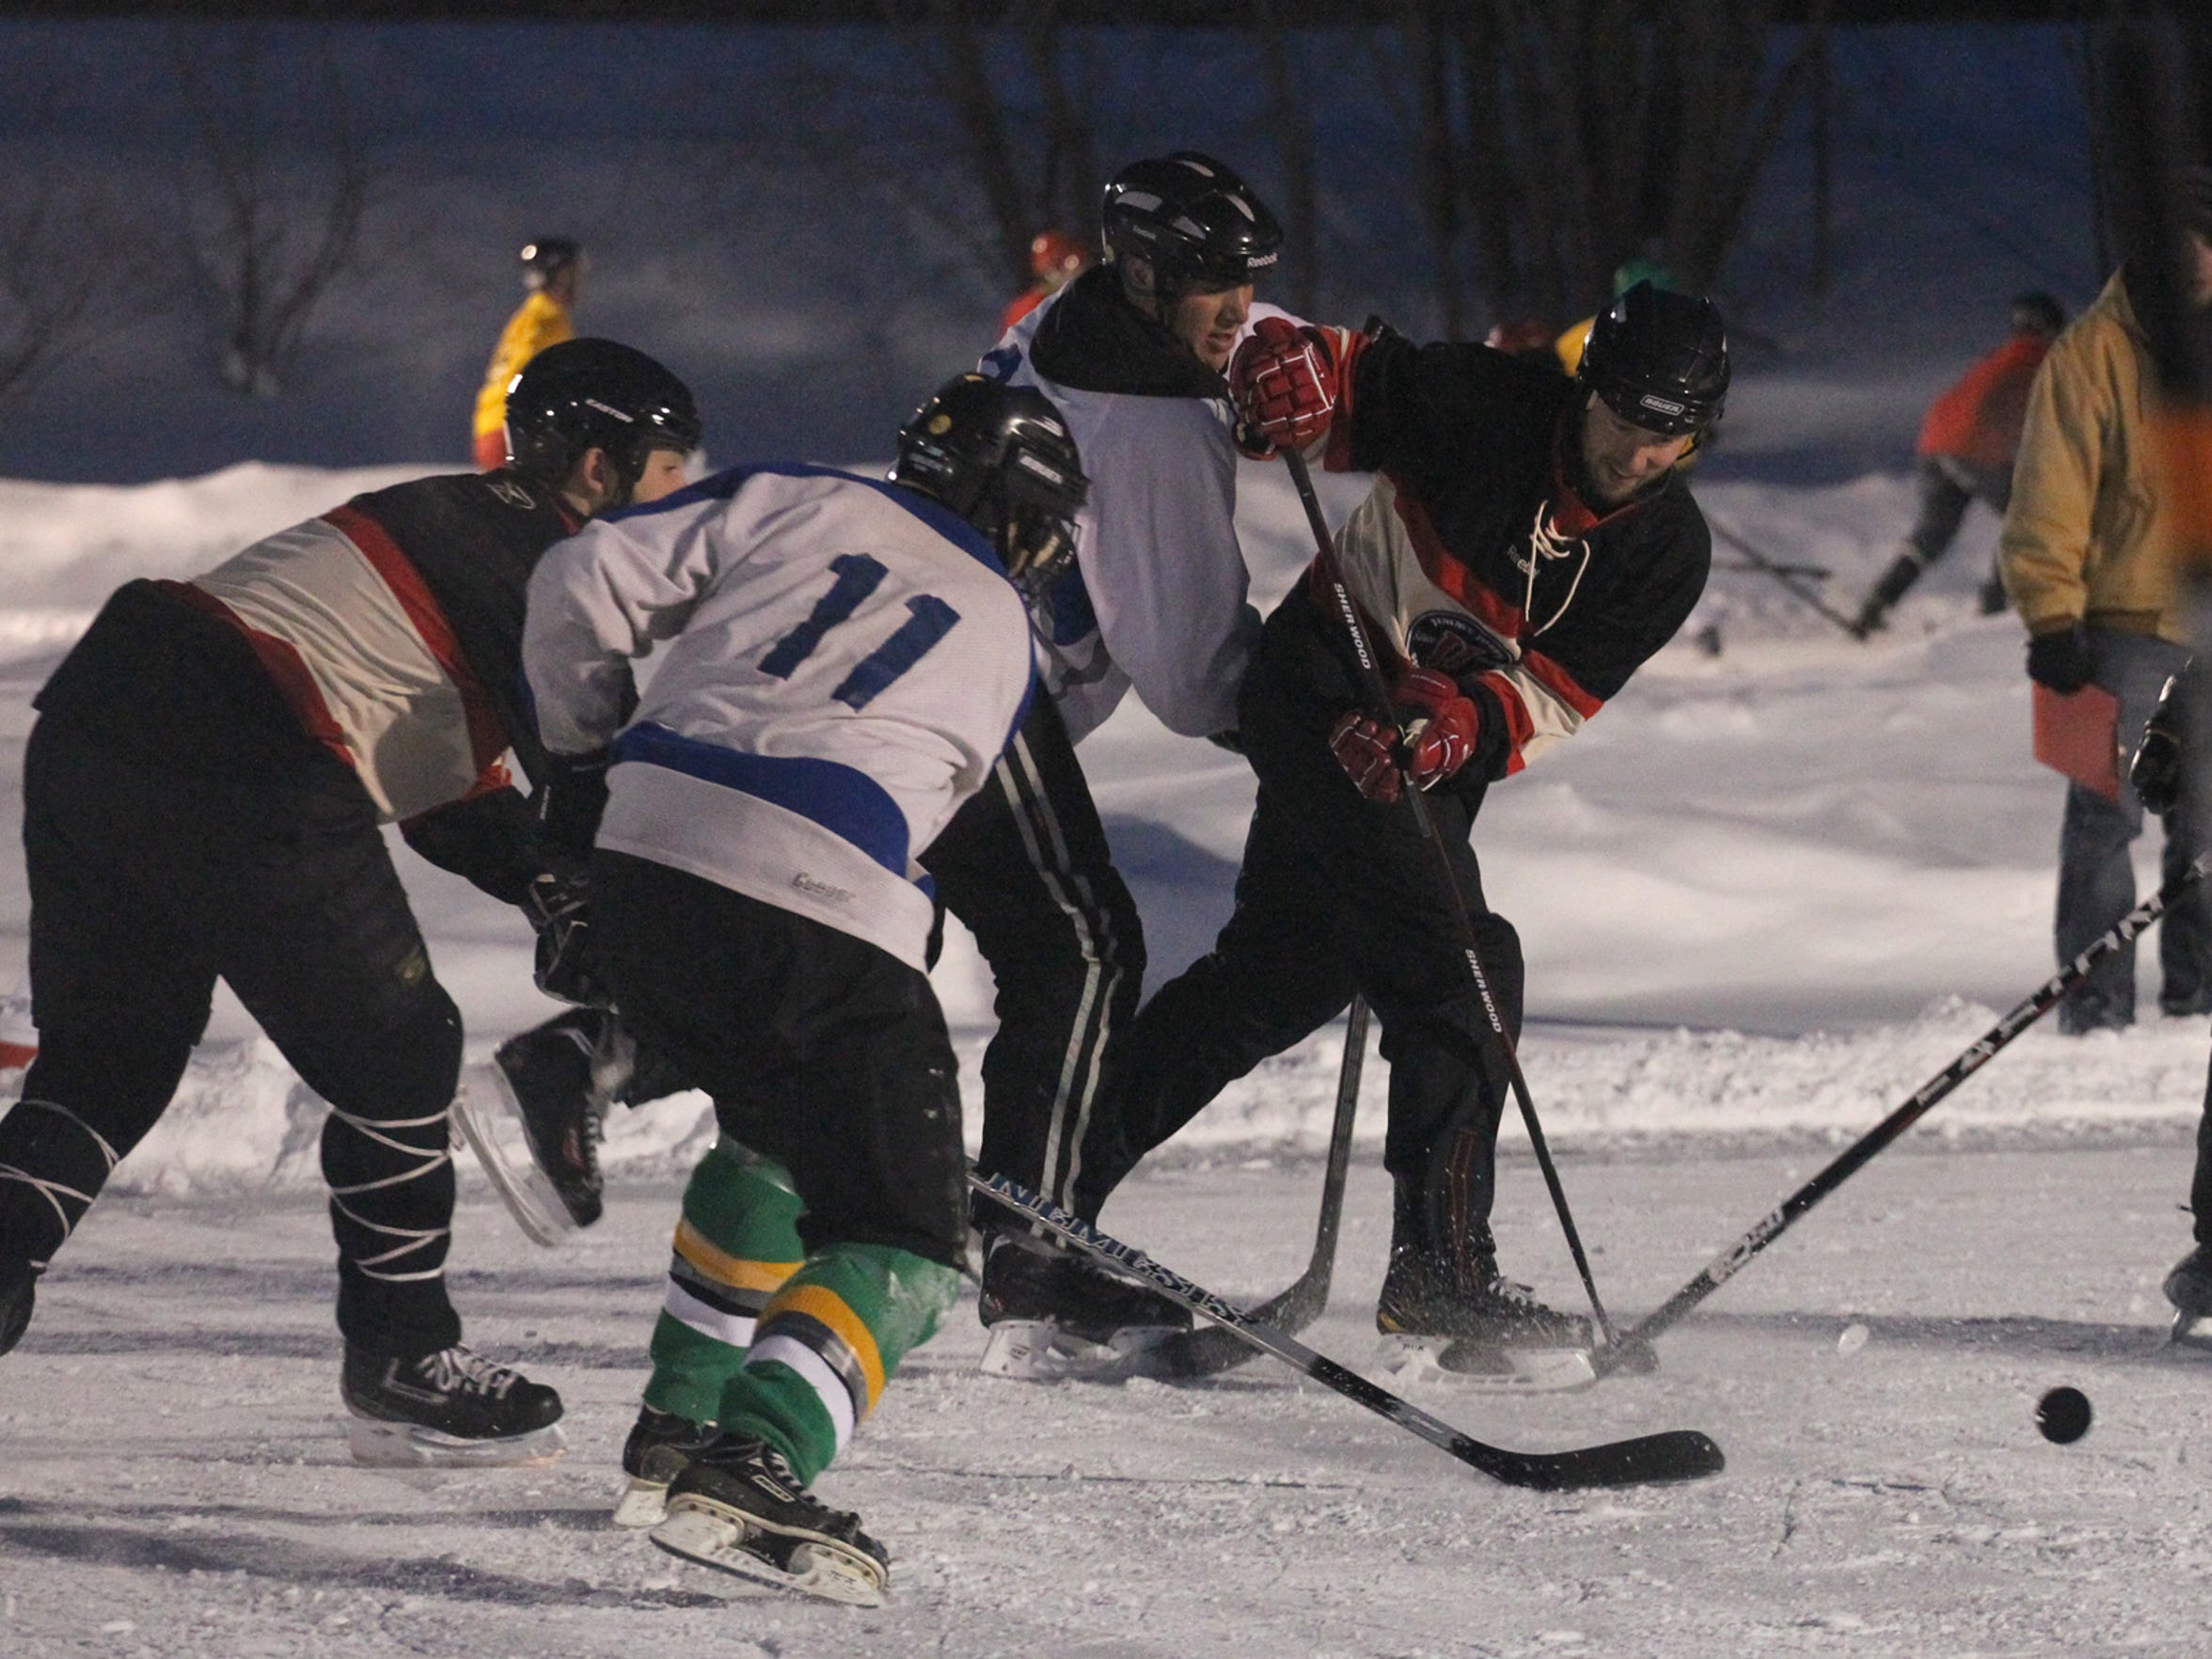 In this 2013 file photo, players battle for the puck at the Midwest Freeze Leinenkugel's Classic Adult Pond Hockey tournament Friday at Sunny Vale Park in Wausau.